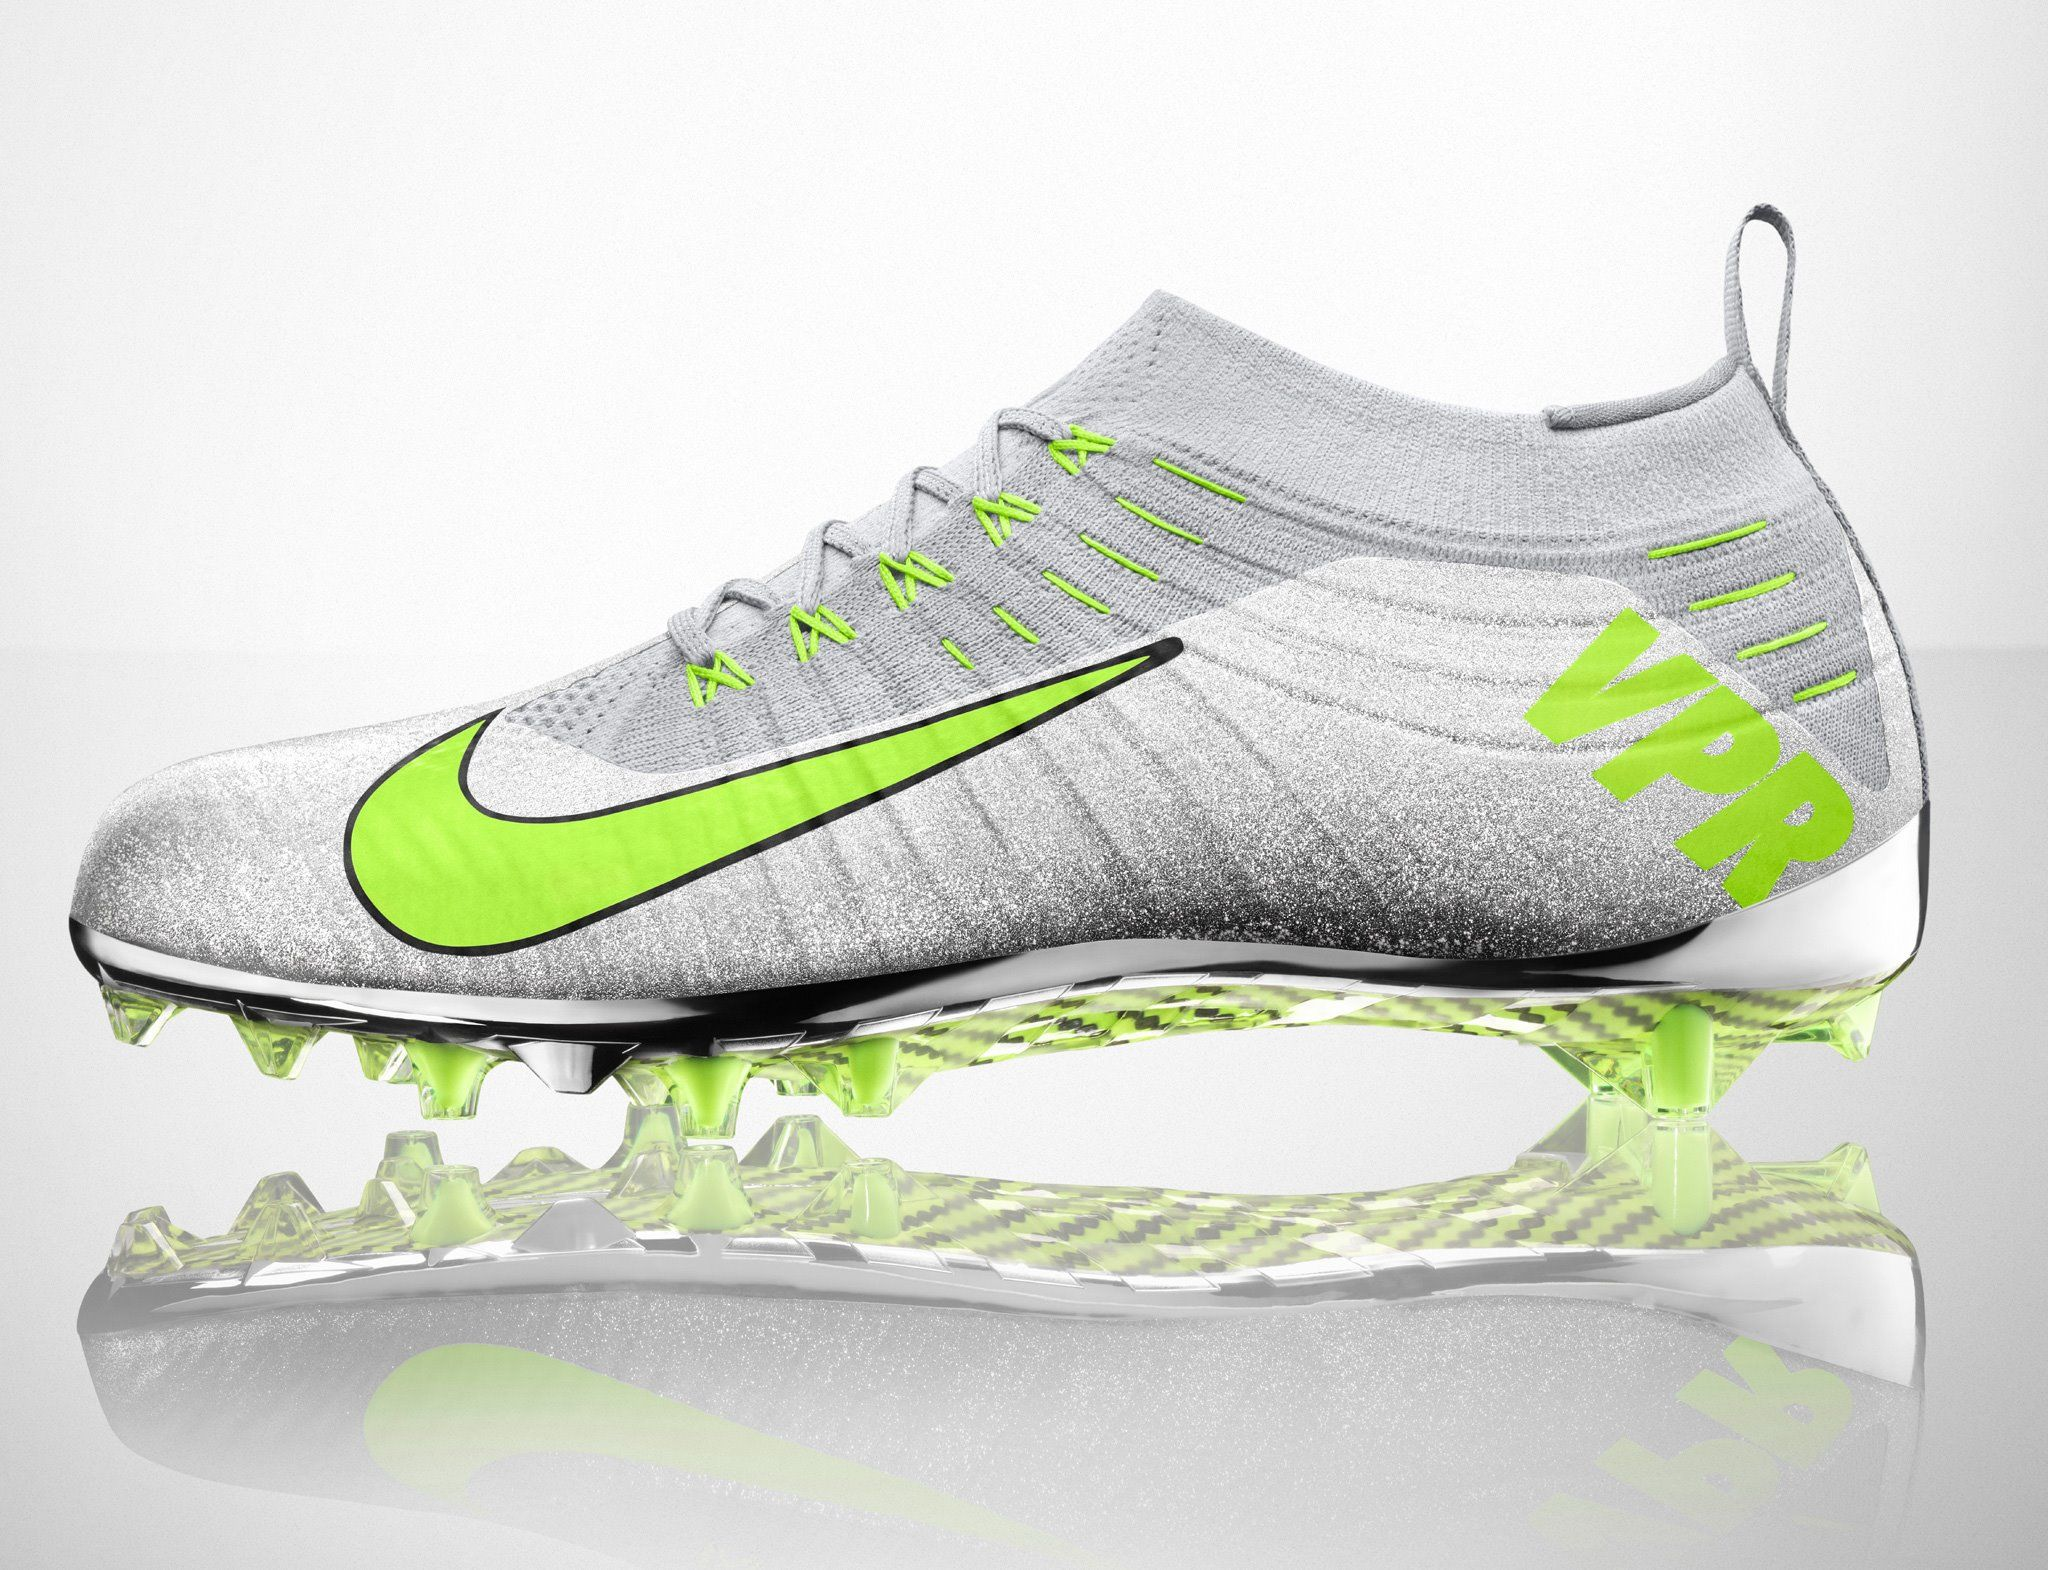 NIKE Ultimate Vapor Football cleat